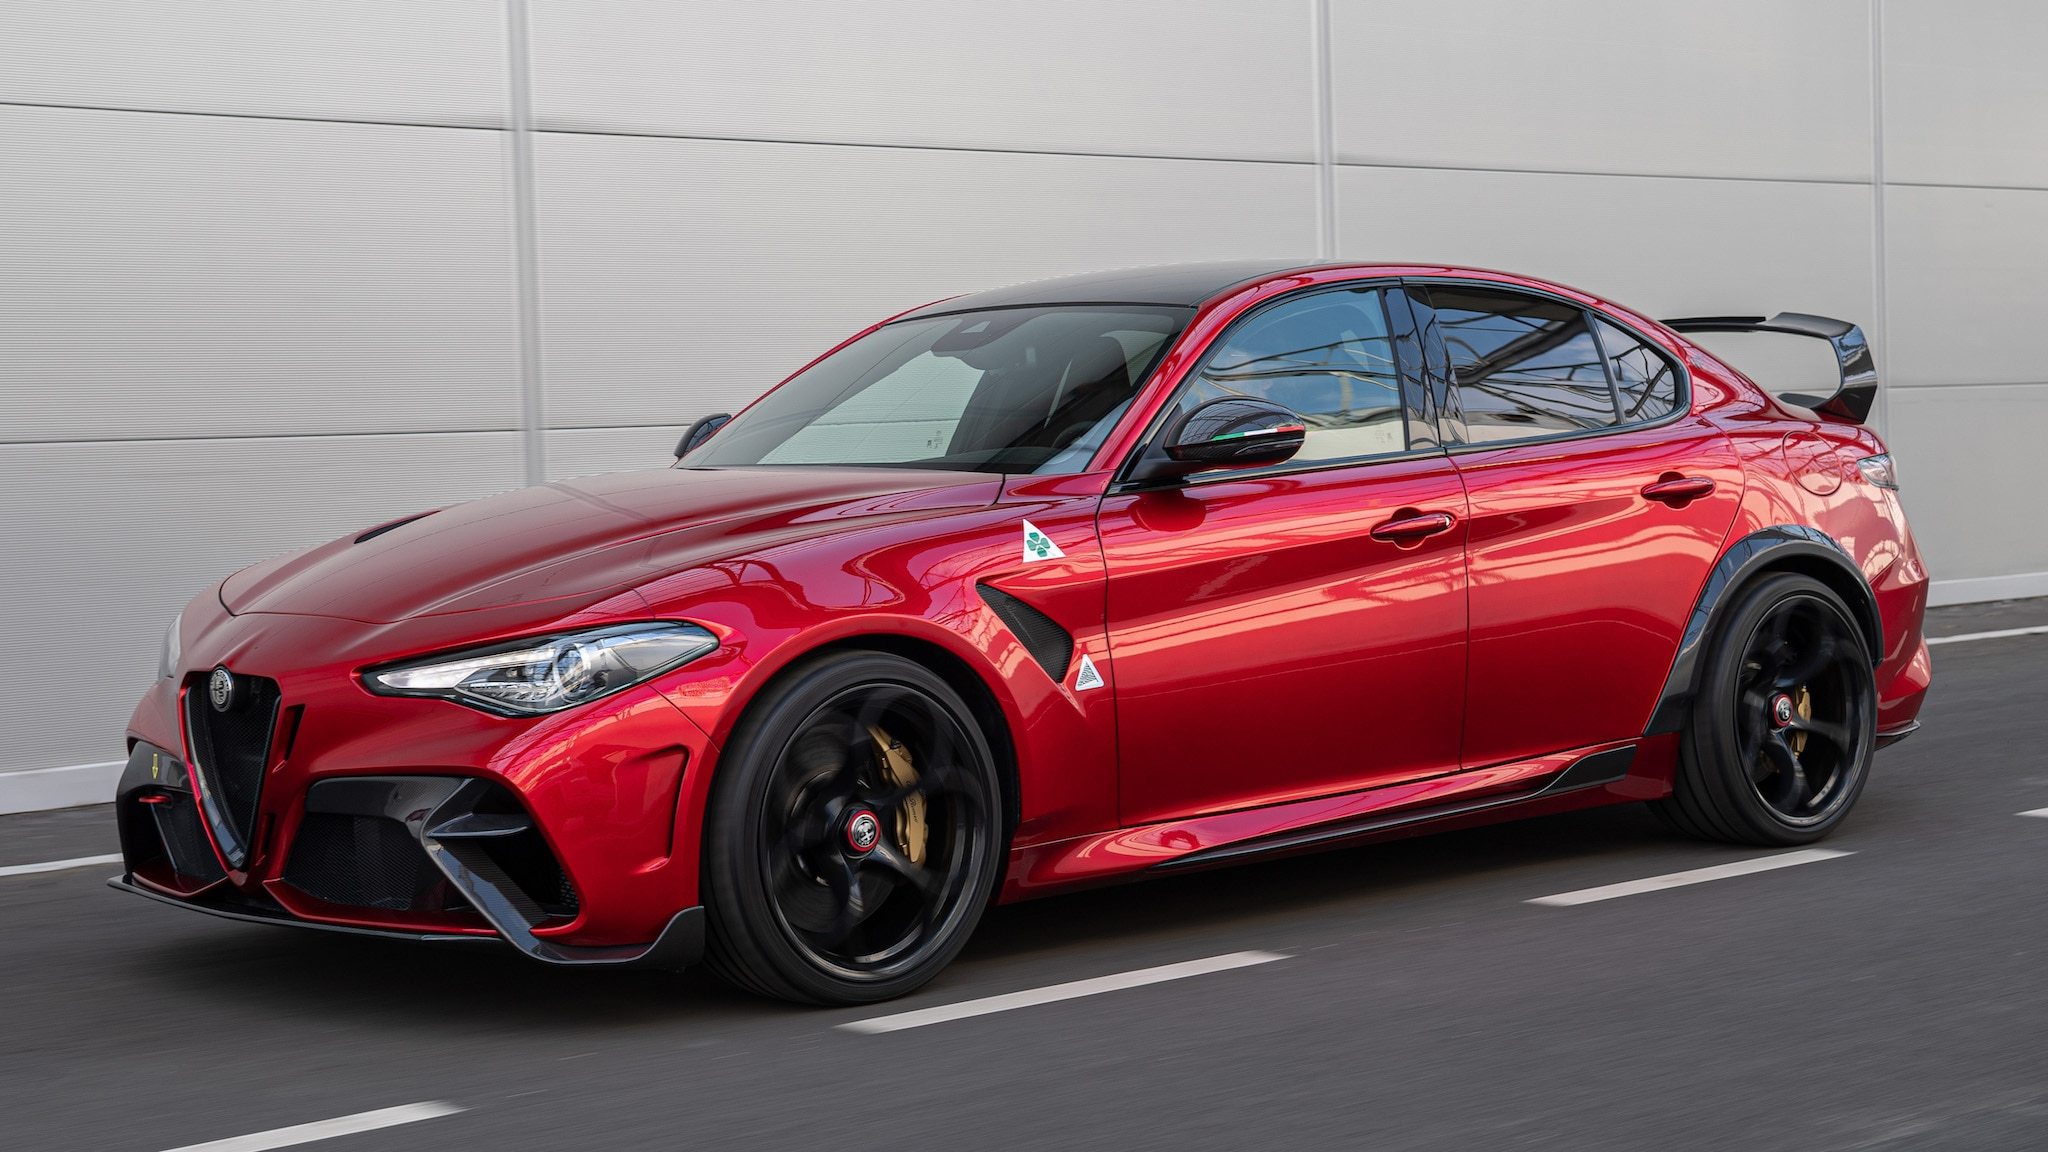 2021 Alfa Romeo Giulia GTA / GTAm: 540 HP, 220 LB Lighter